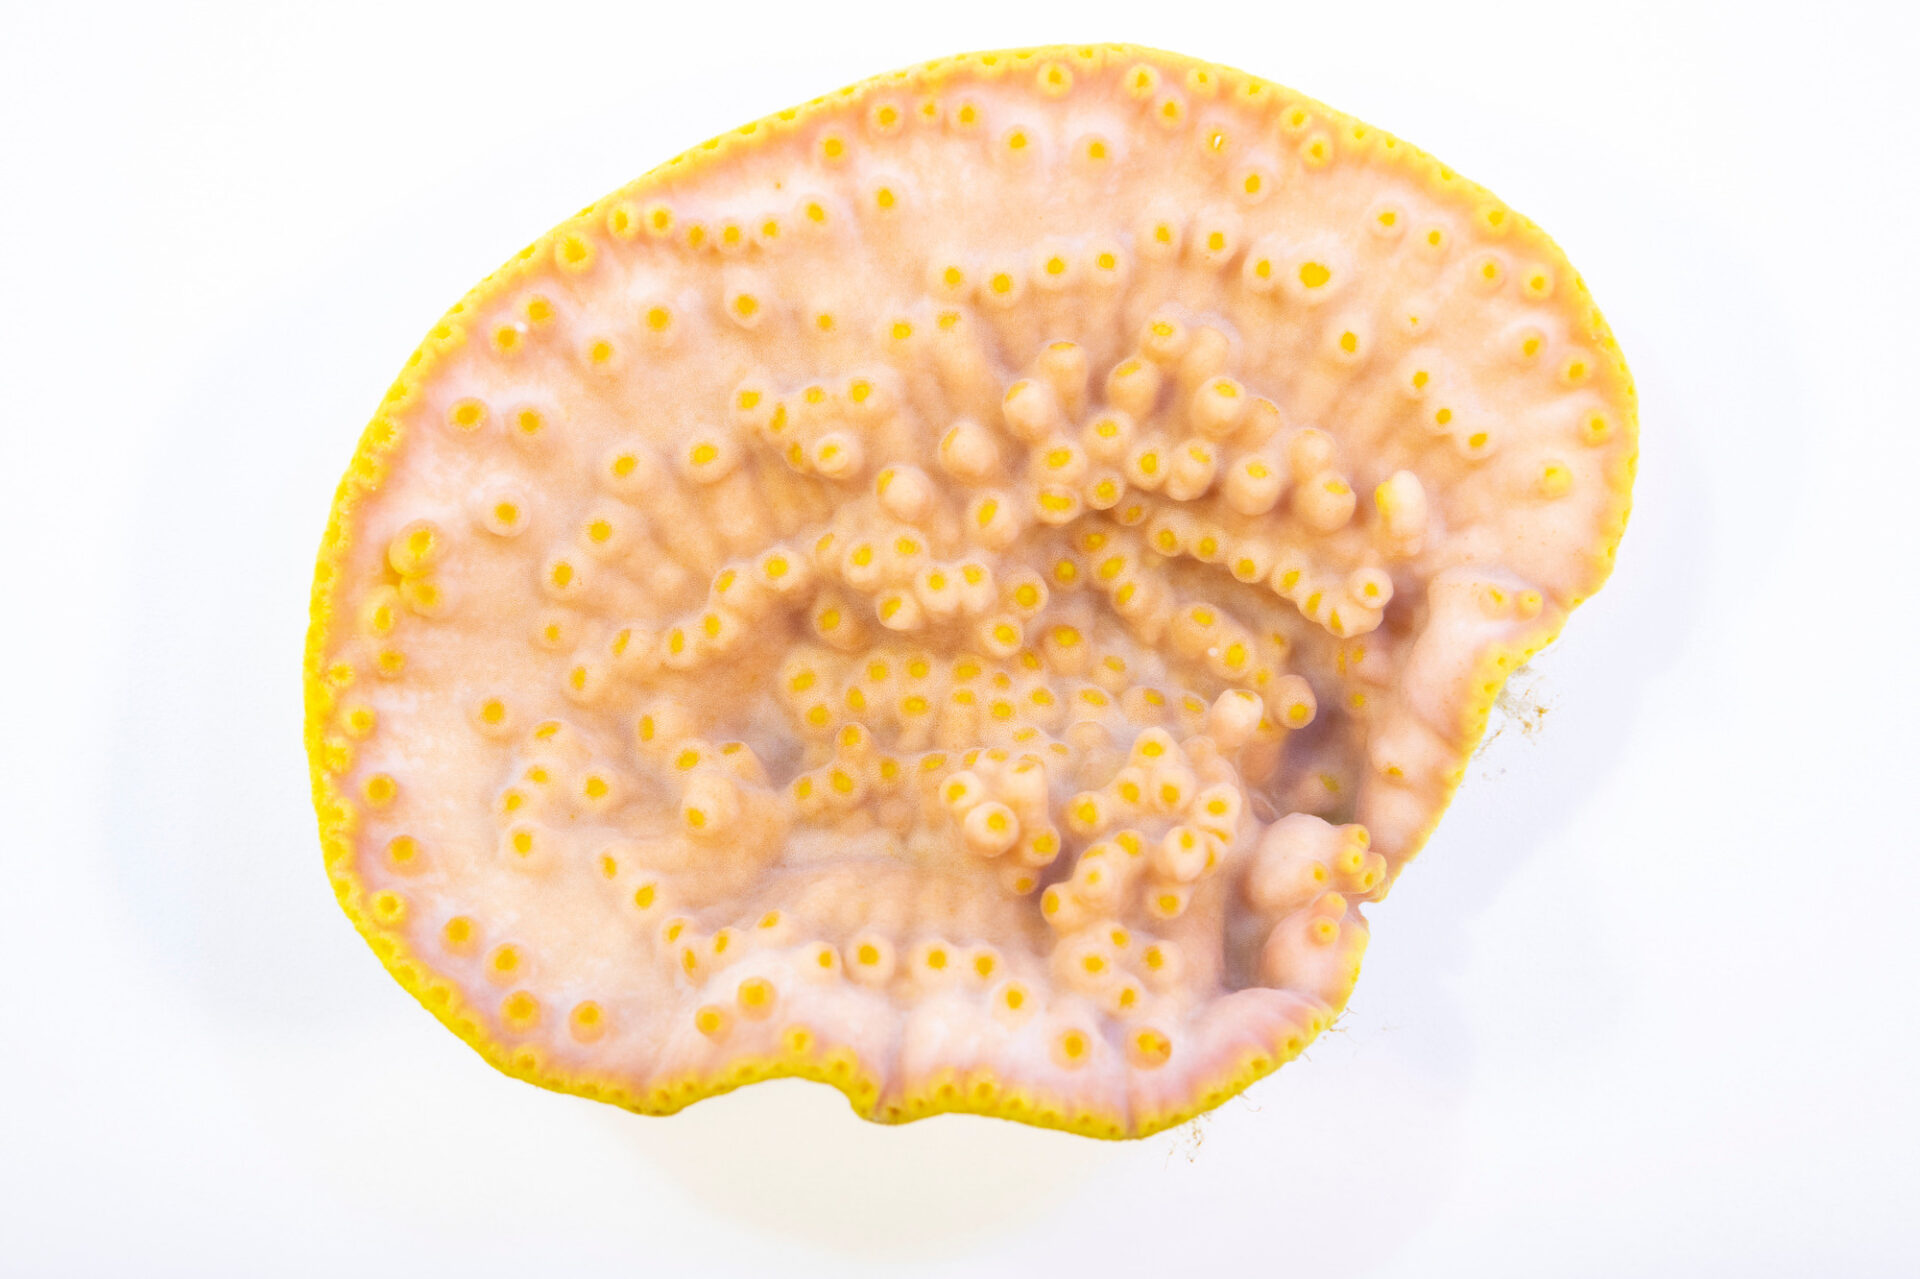 Photo: A yellow scroll coral (Turbinaria reinformous) at the Akron Zoo. This species is listed as vulnerable by IUCN.